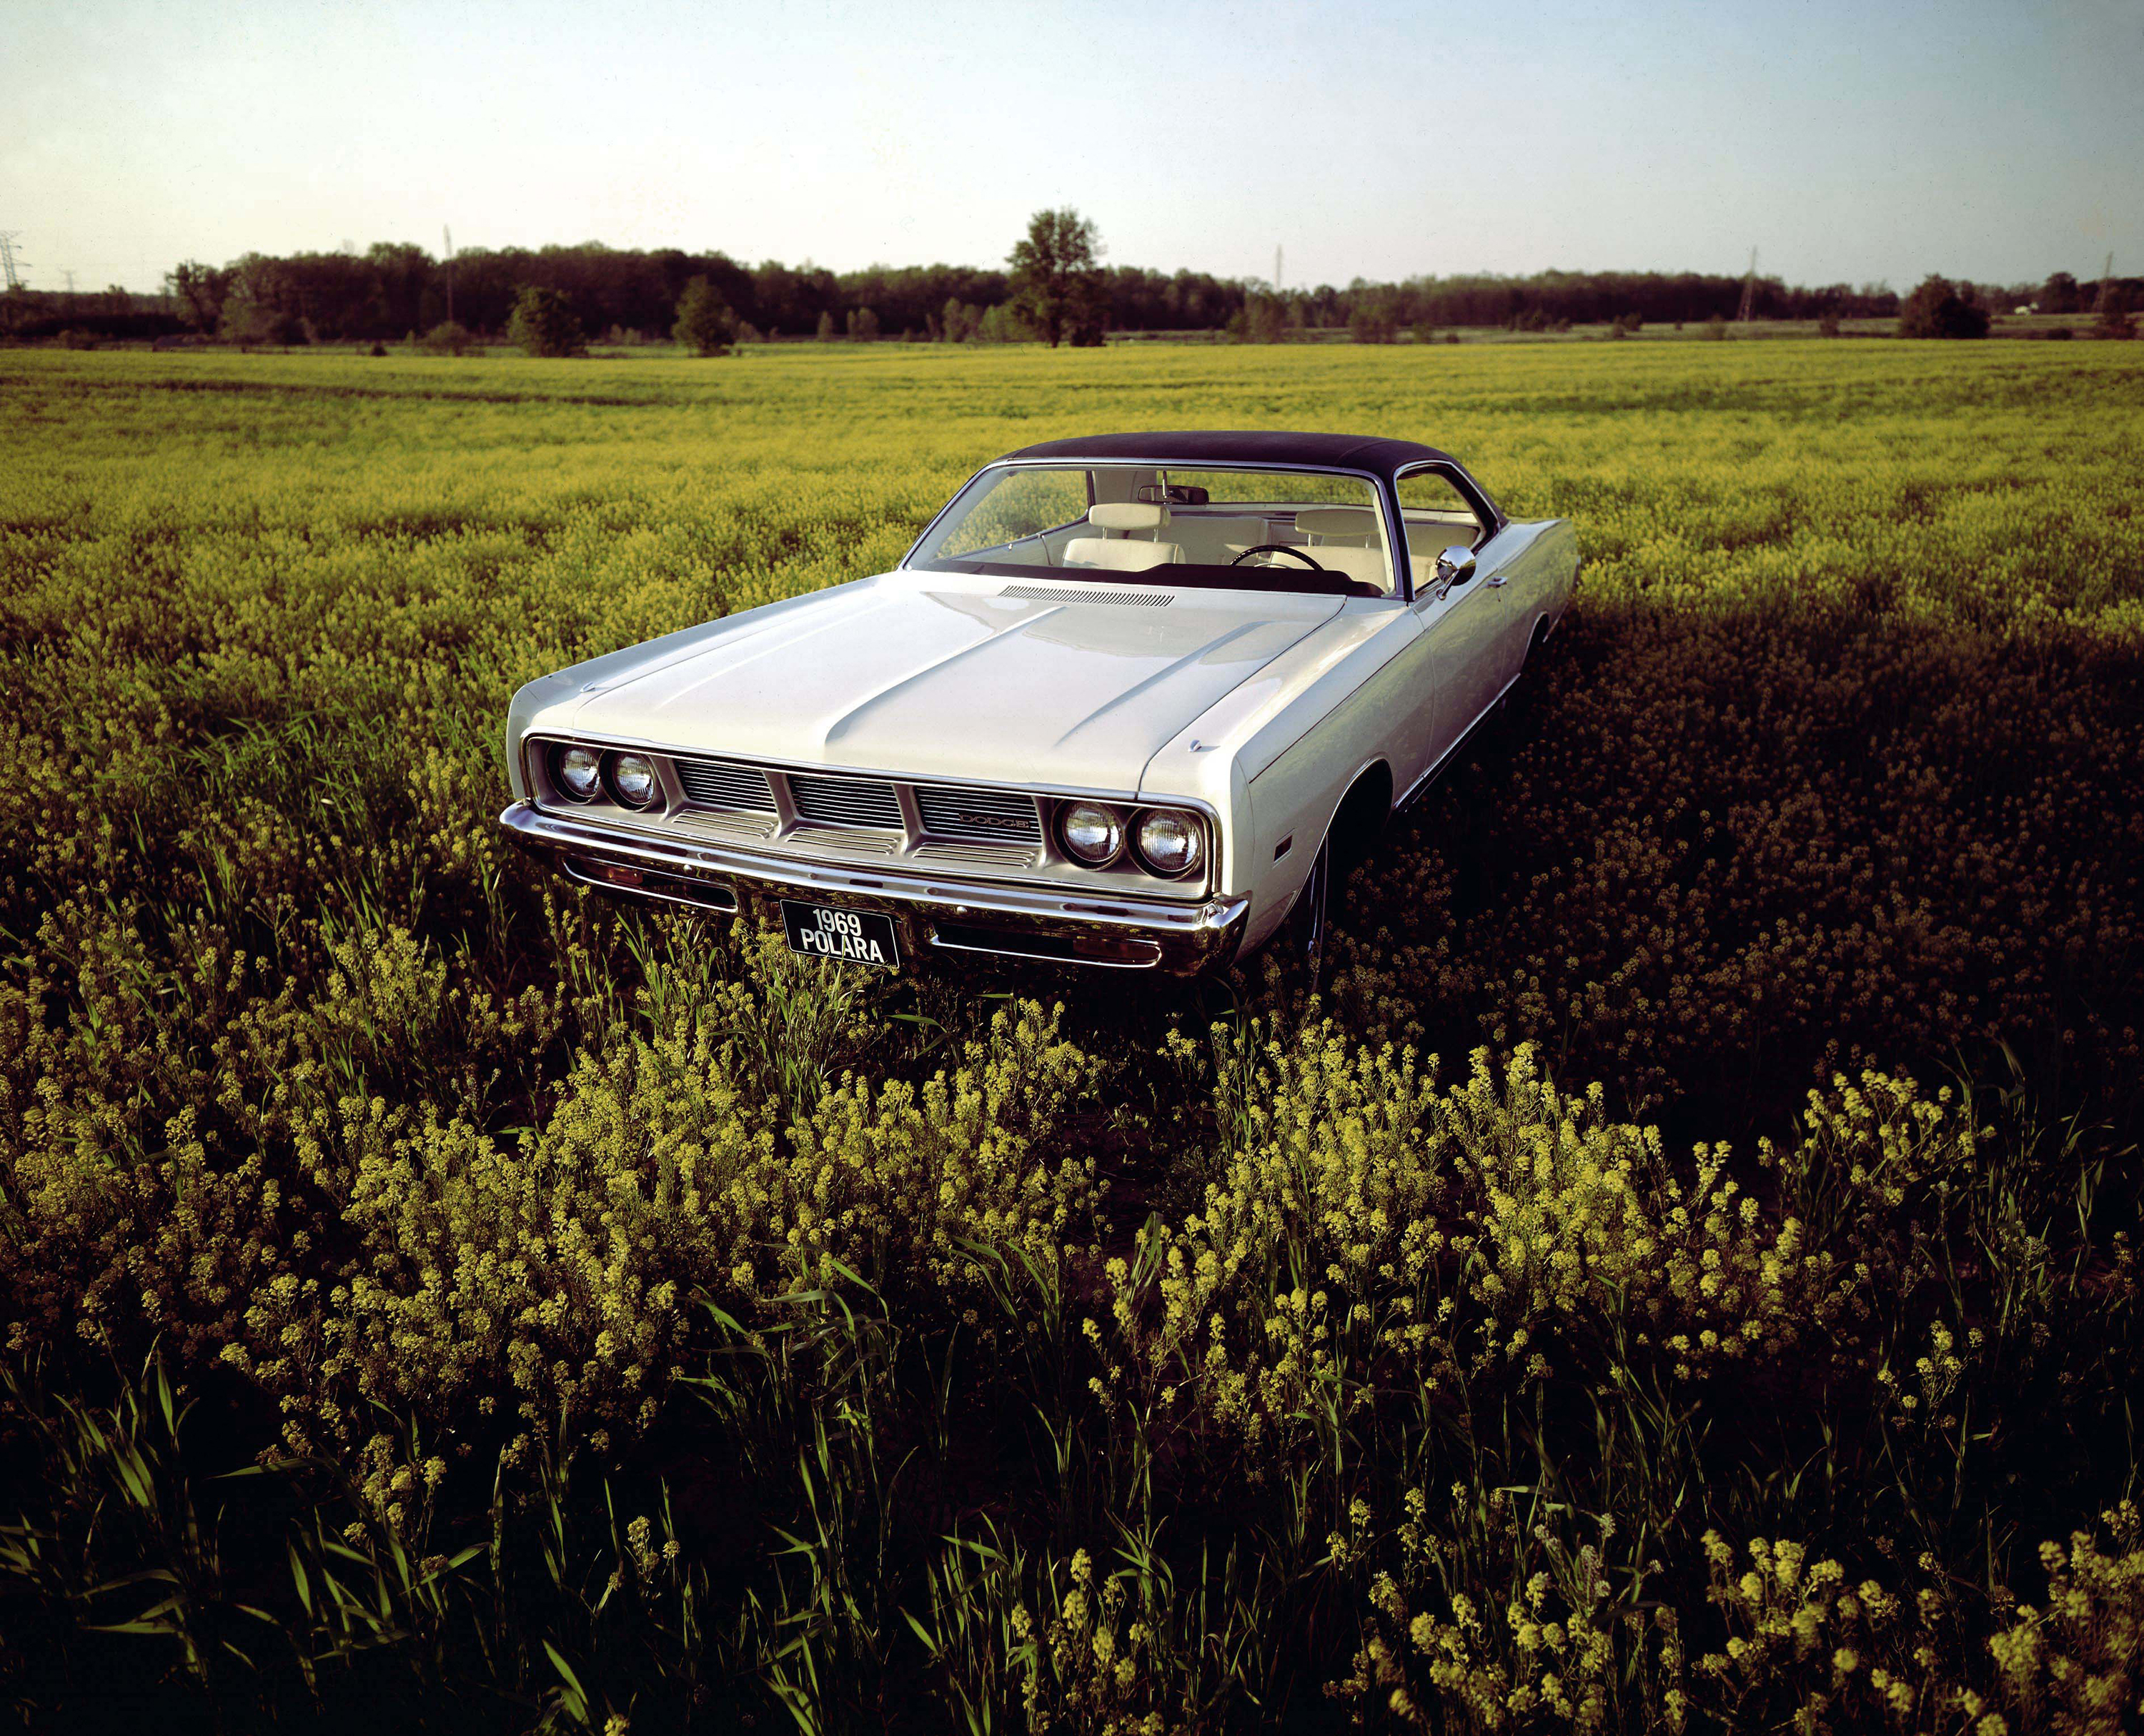 1969 Dodge Polara 2-door